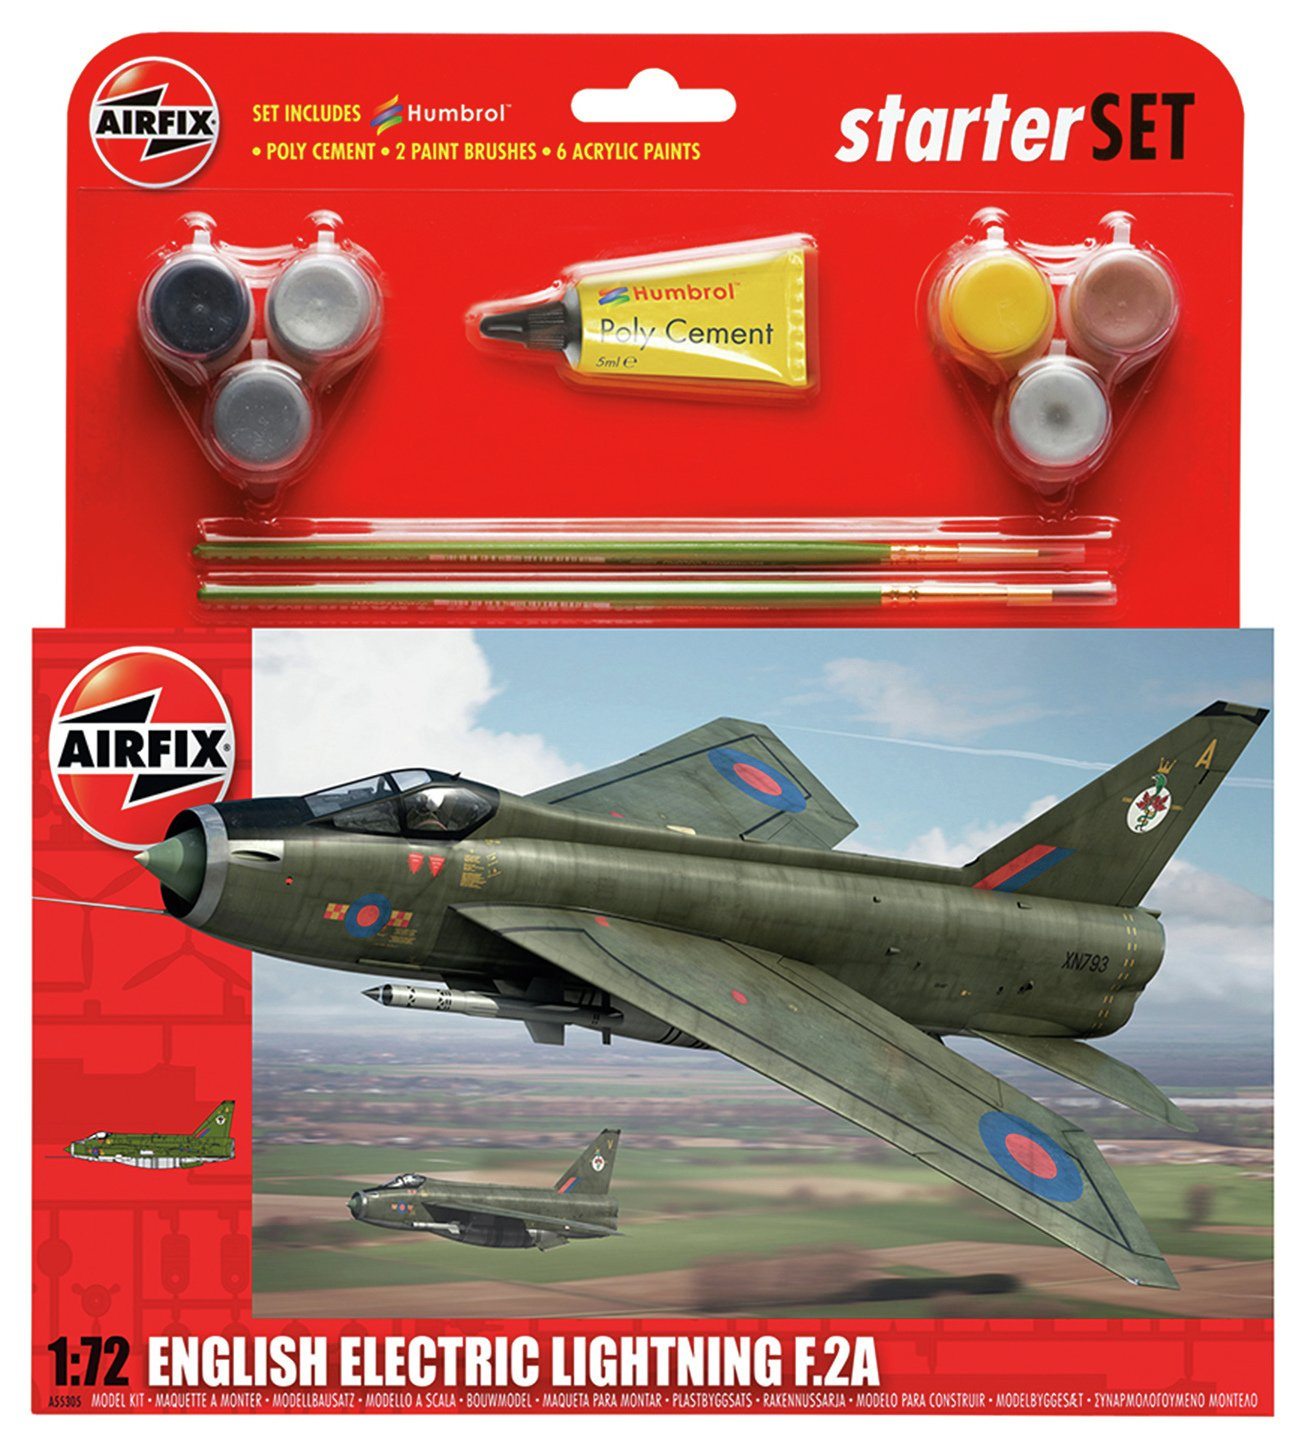 Image of Airfix RAF English Electric Lightning Model Kit.